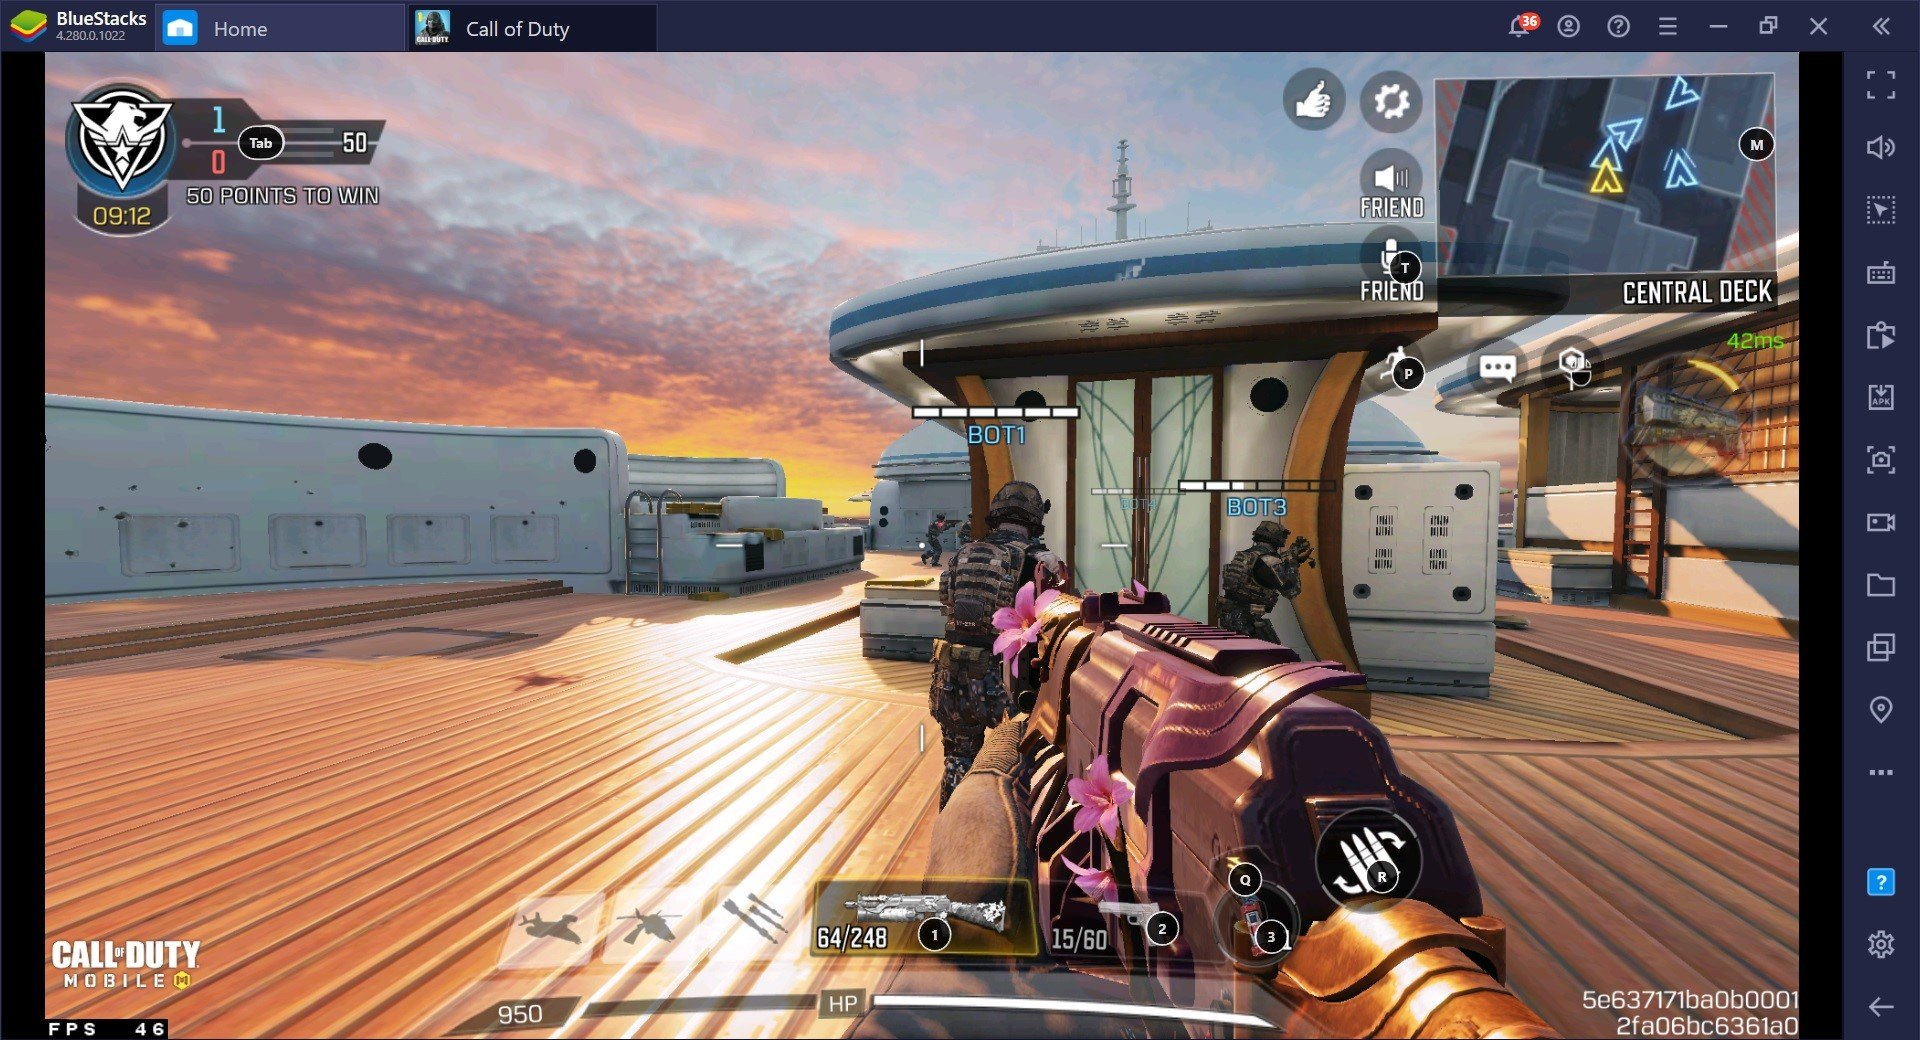 Call of Duty: Mobile Guide for MP Games – Get Your Tips from the Pro Play